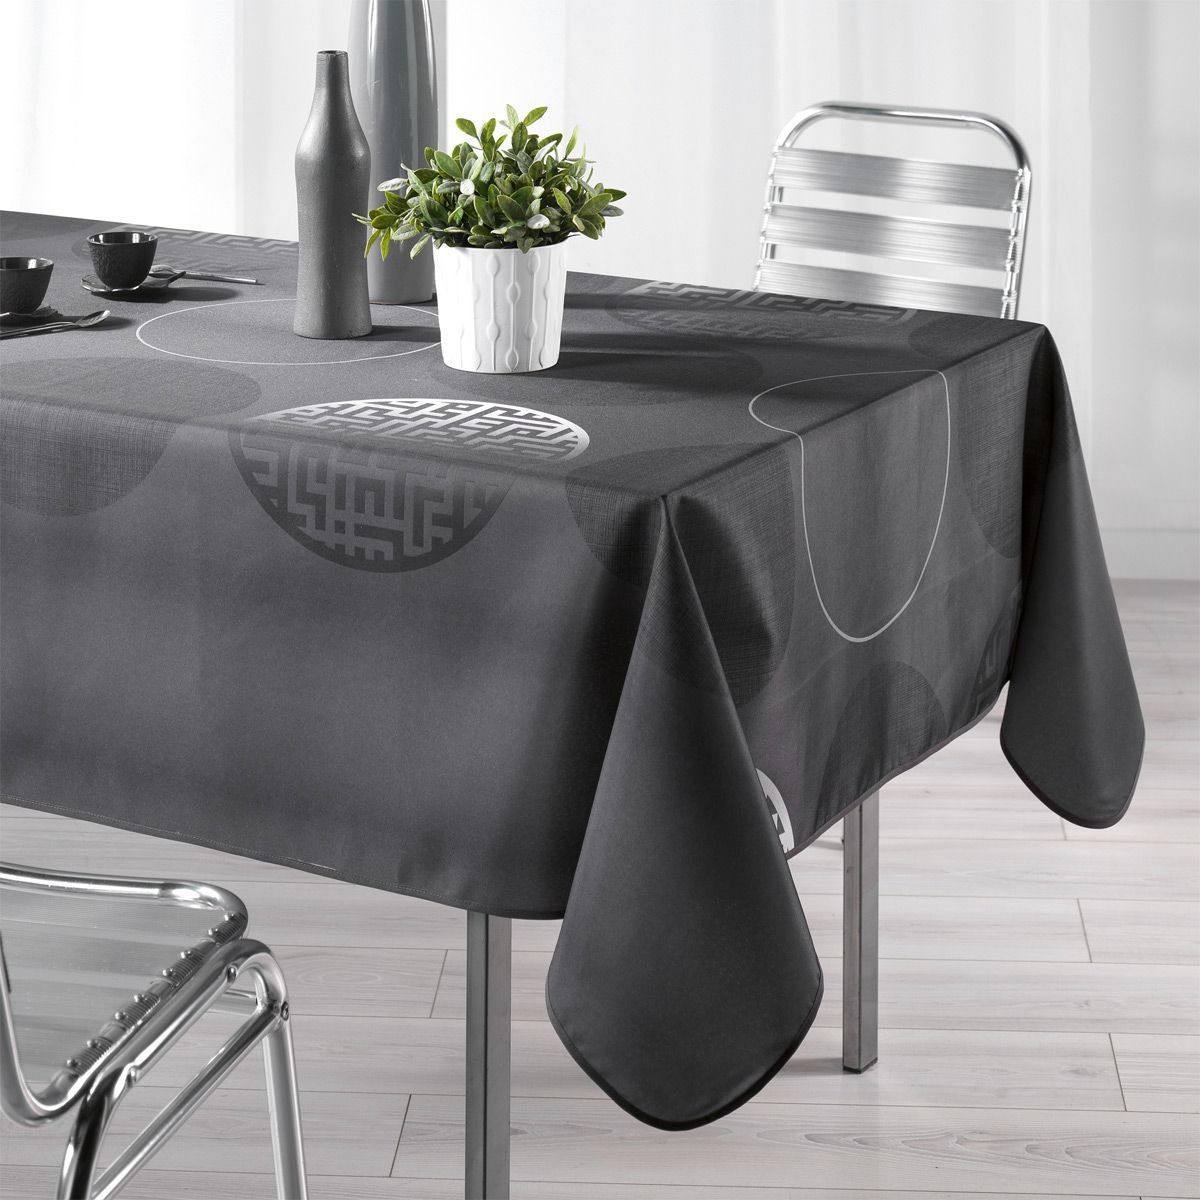 nappe rectangulaire l240 cm kosmo anthracite nappe de table eminza. Black Bedroom Furniture Sets. Home Design Ideas